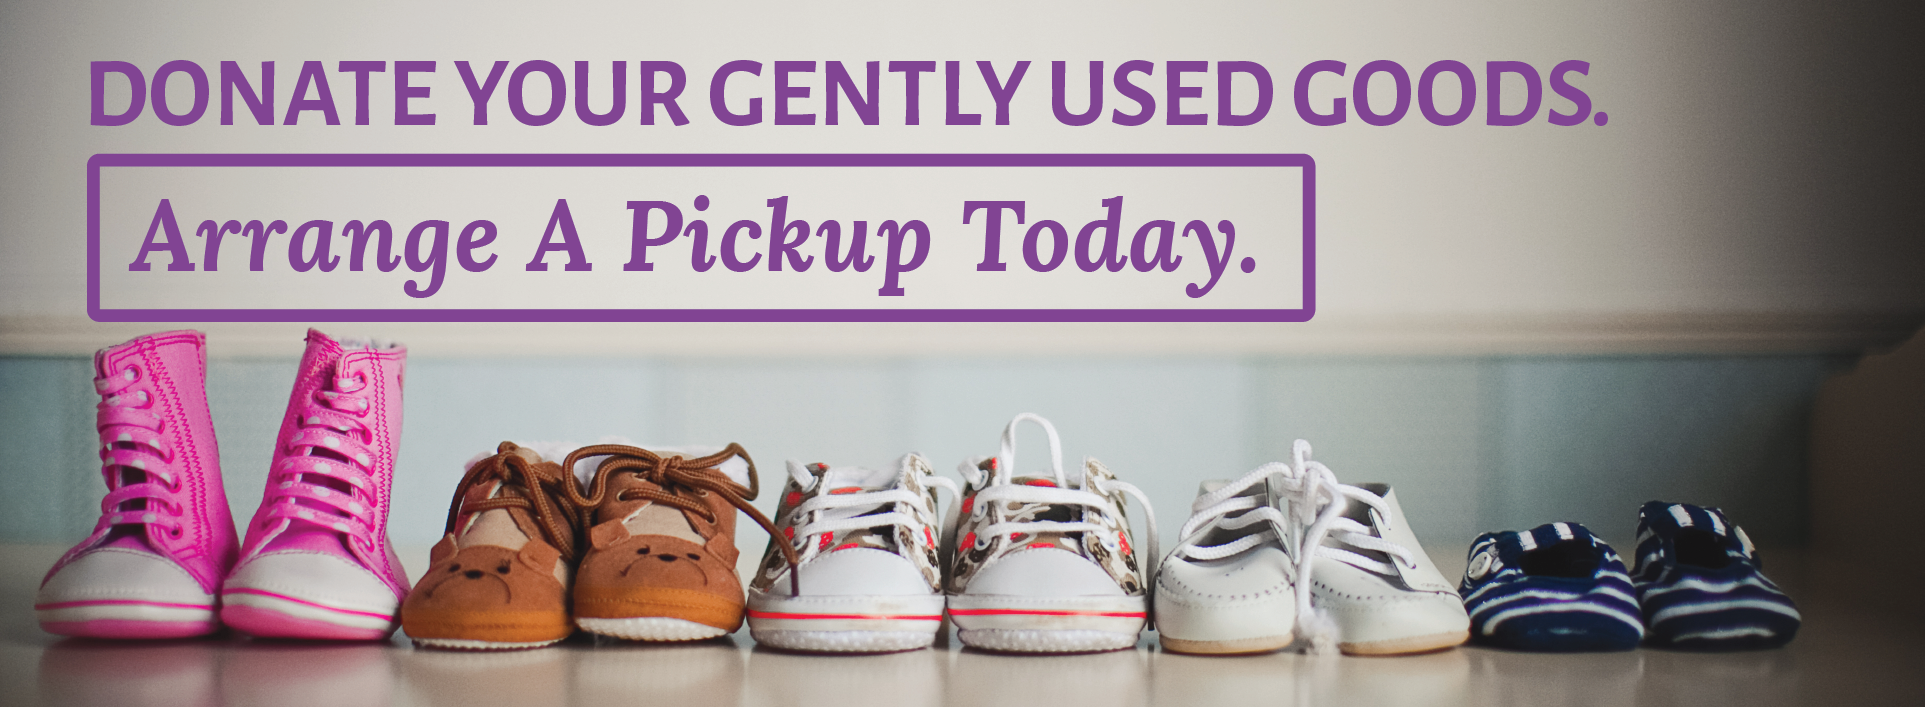 Lutheran Services of Georgia - Donate gently used goods banner